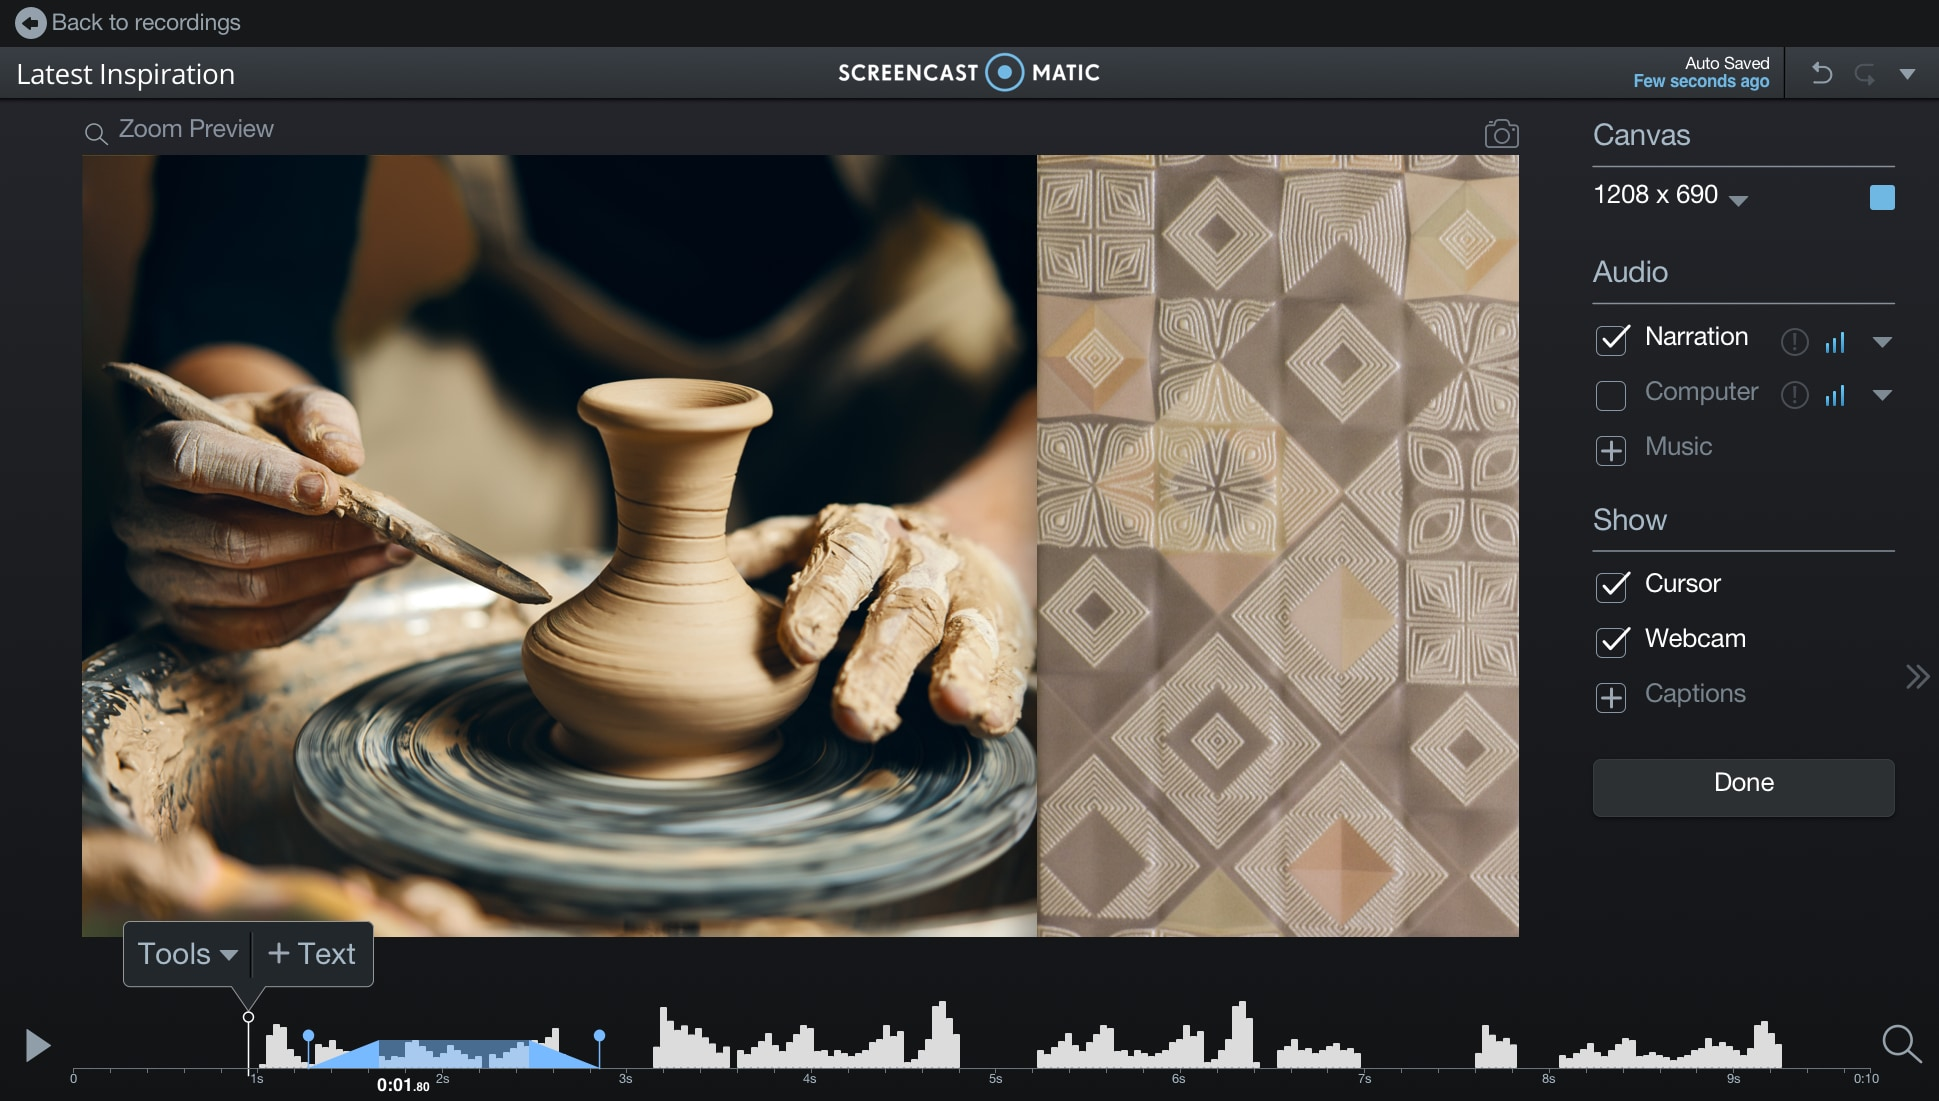 25 Creative Ways to Use Screencast-O-Matic For Remote Learning